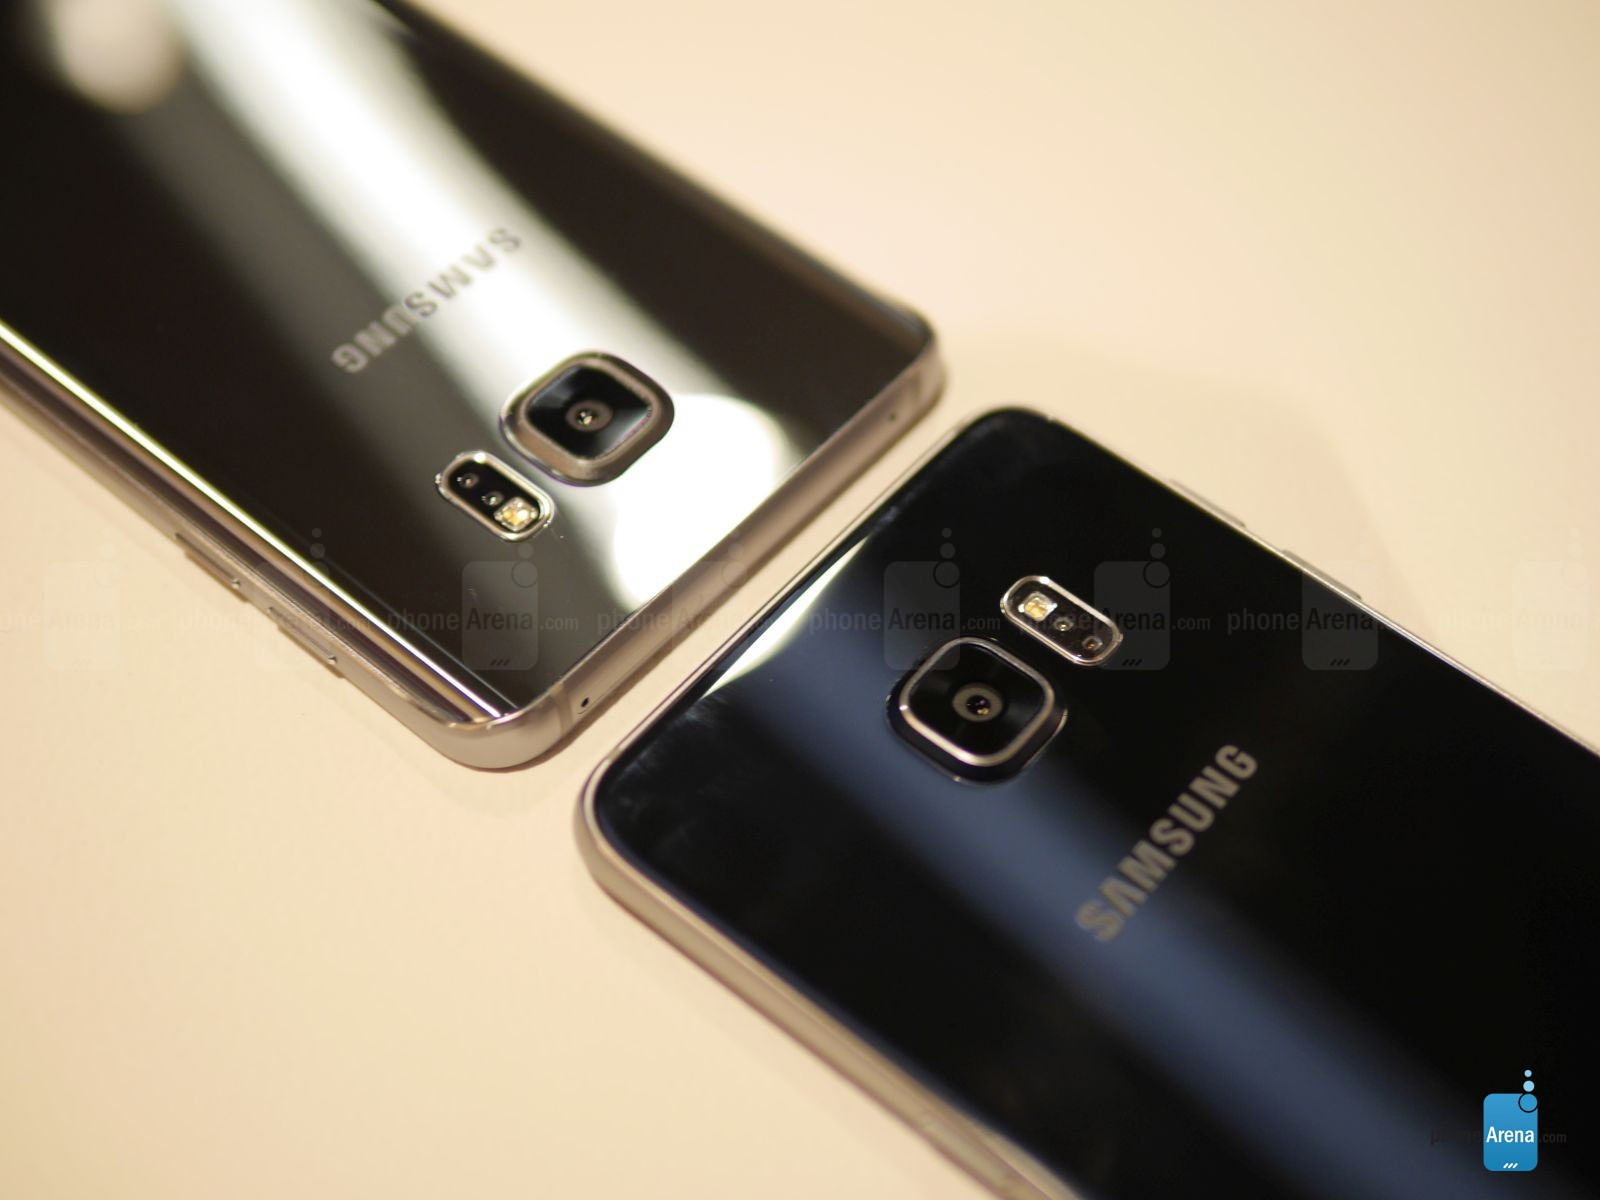 Samsung-Galaxy-S6-edge-vs-Galaxy-Note5 (4)